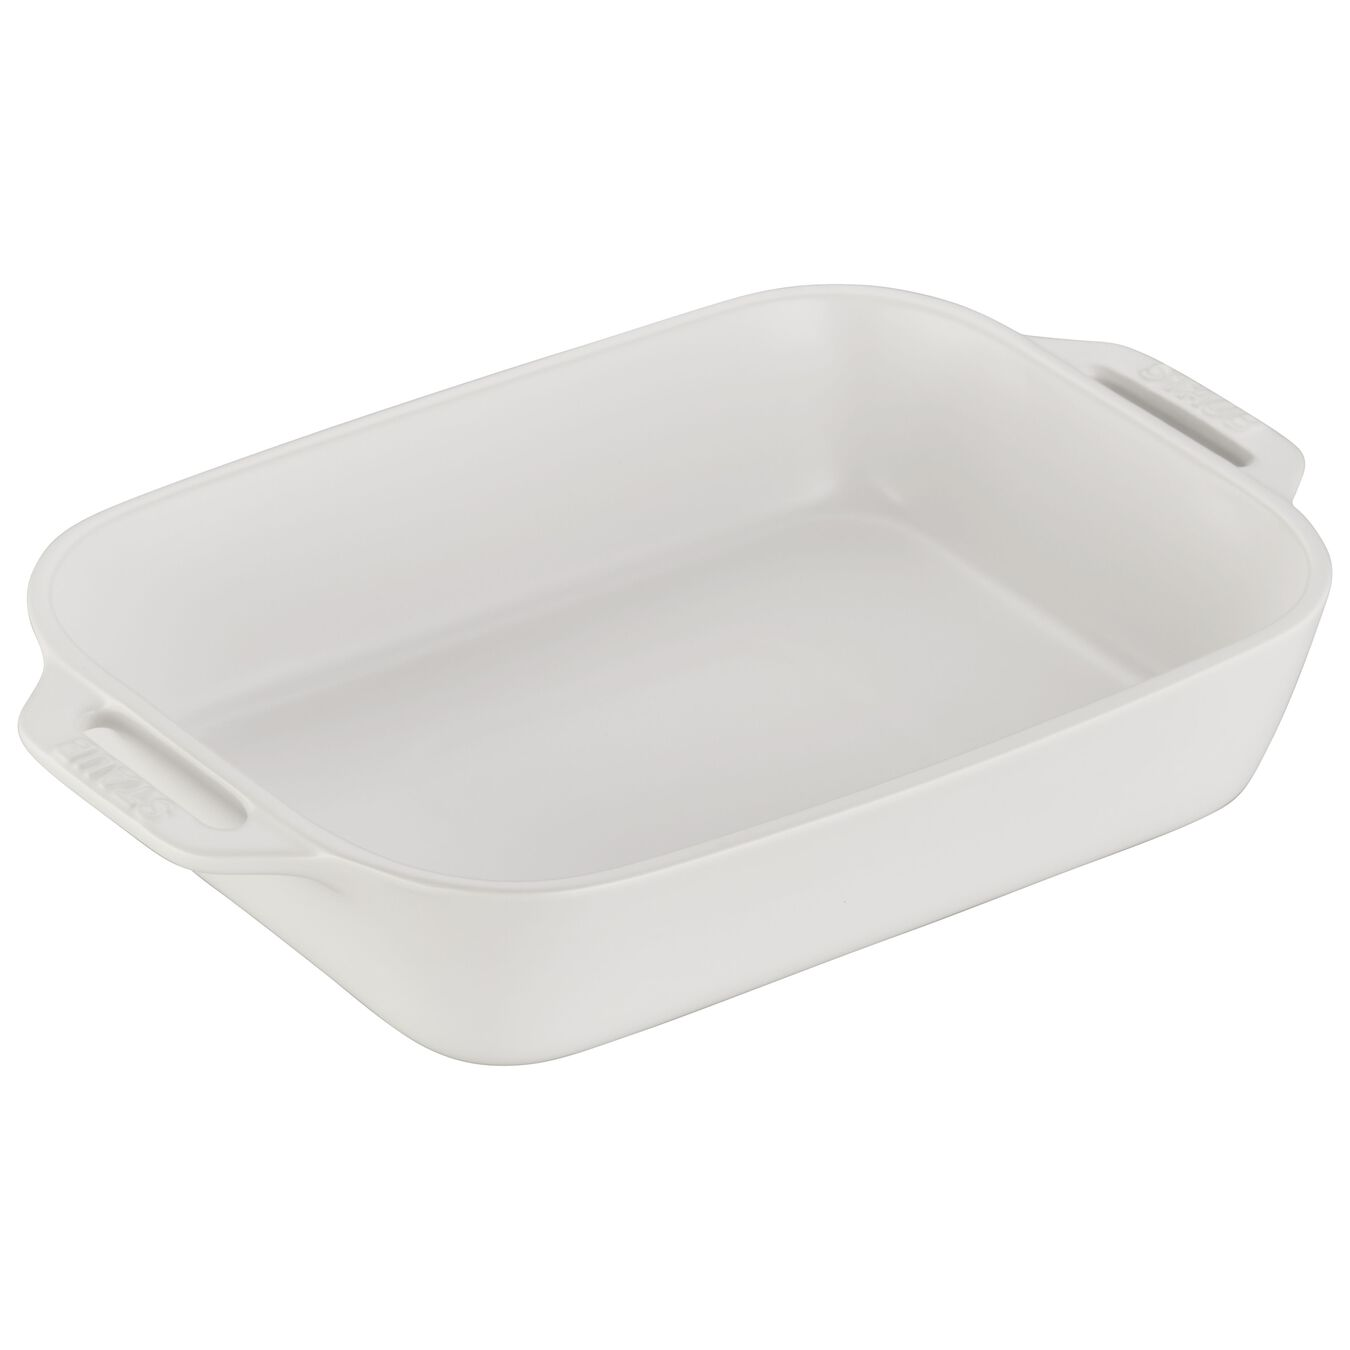 2-pc Rectangular Baking Dish Set - Matte White,,large 3